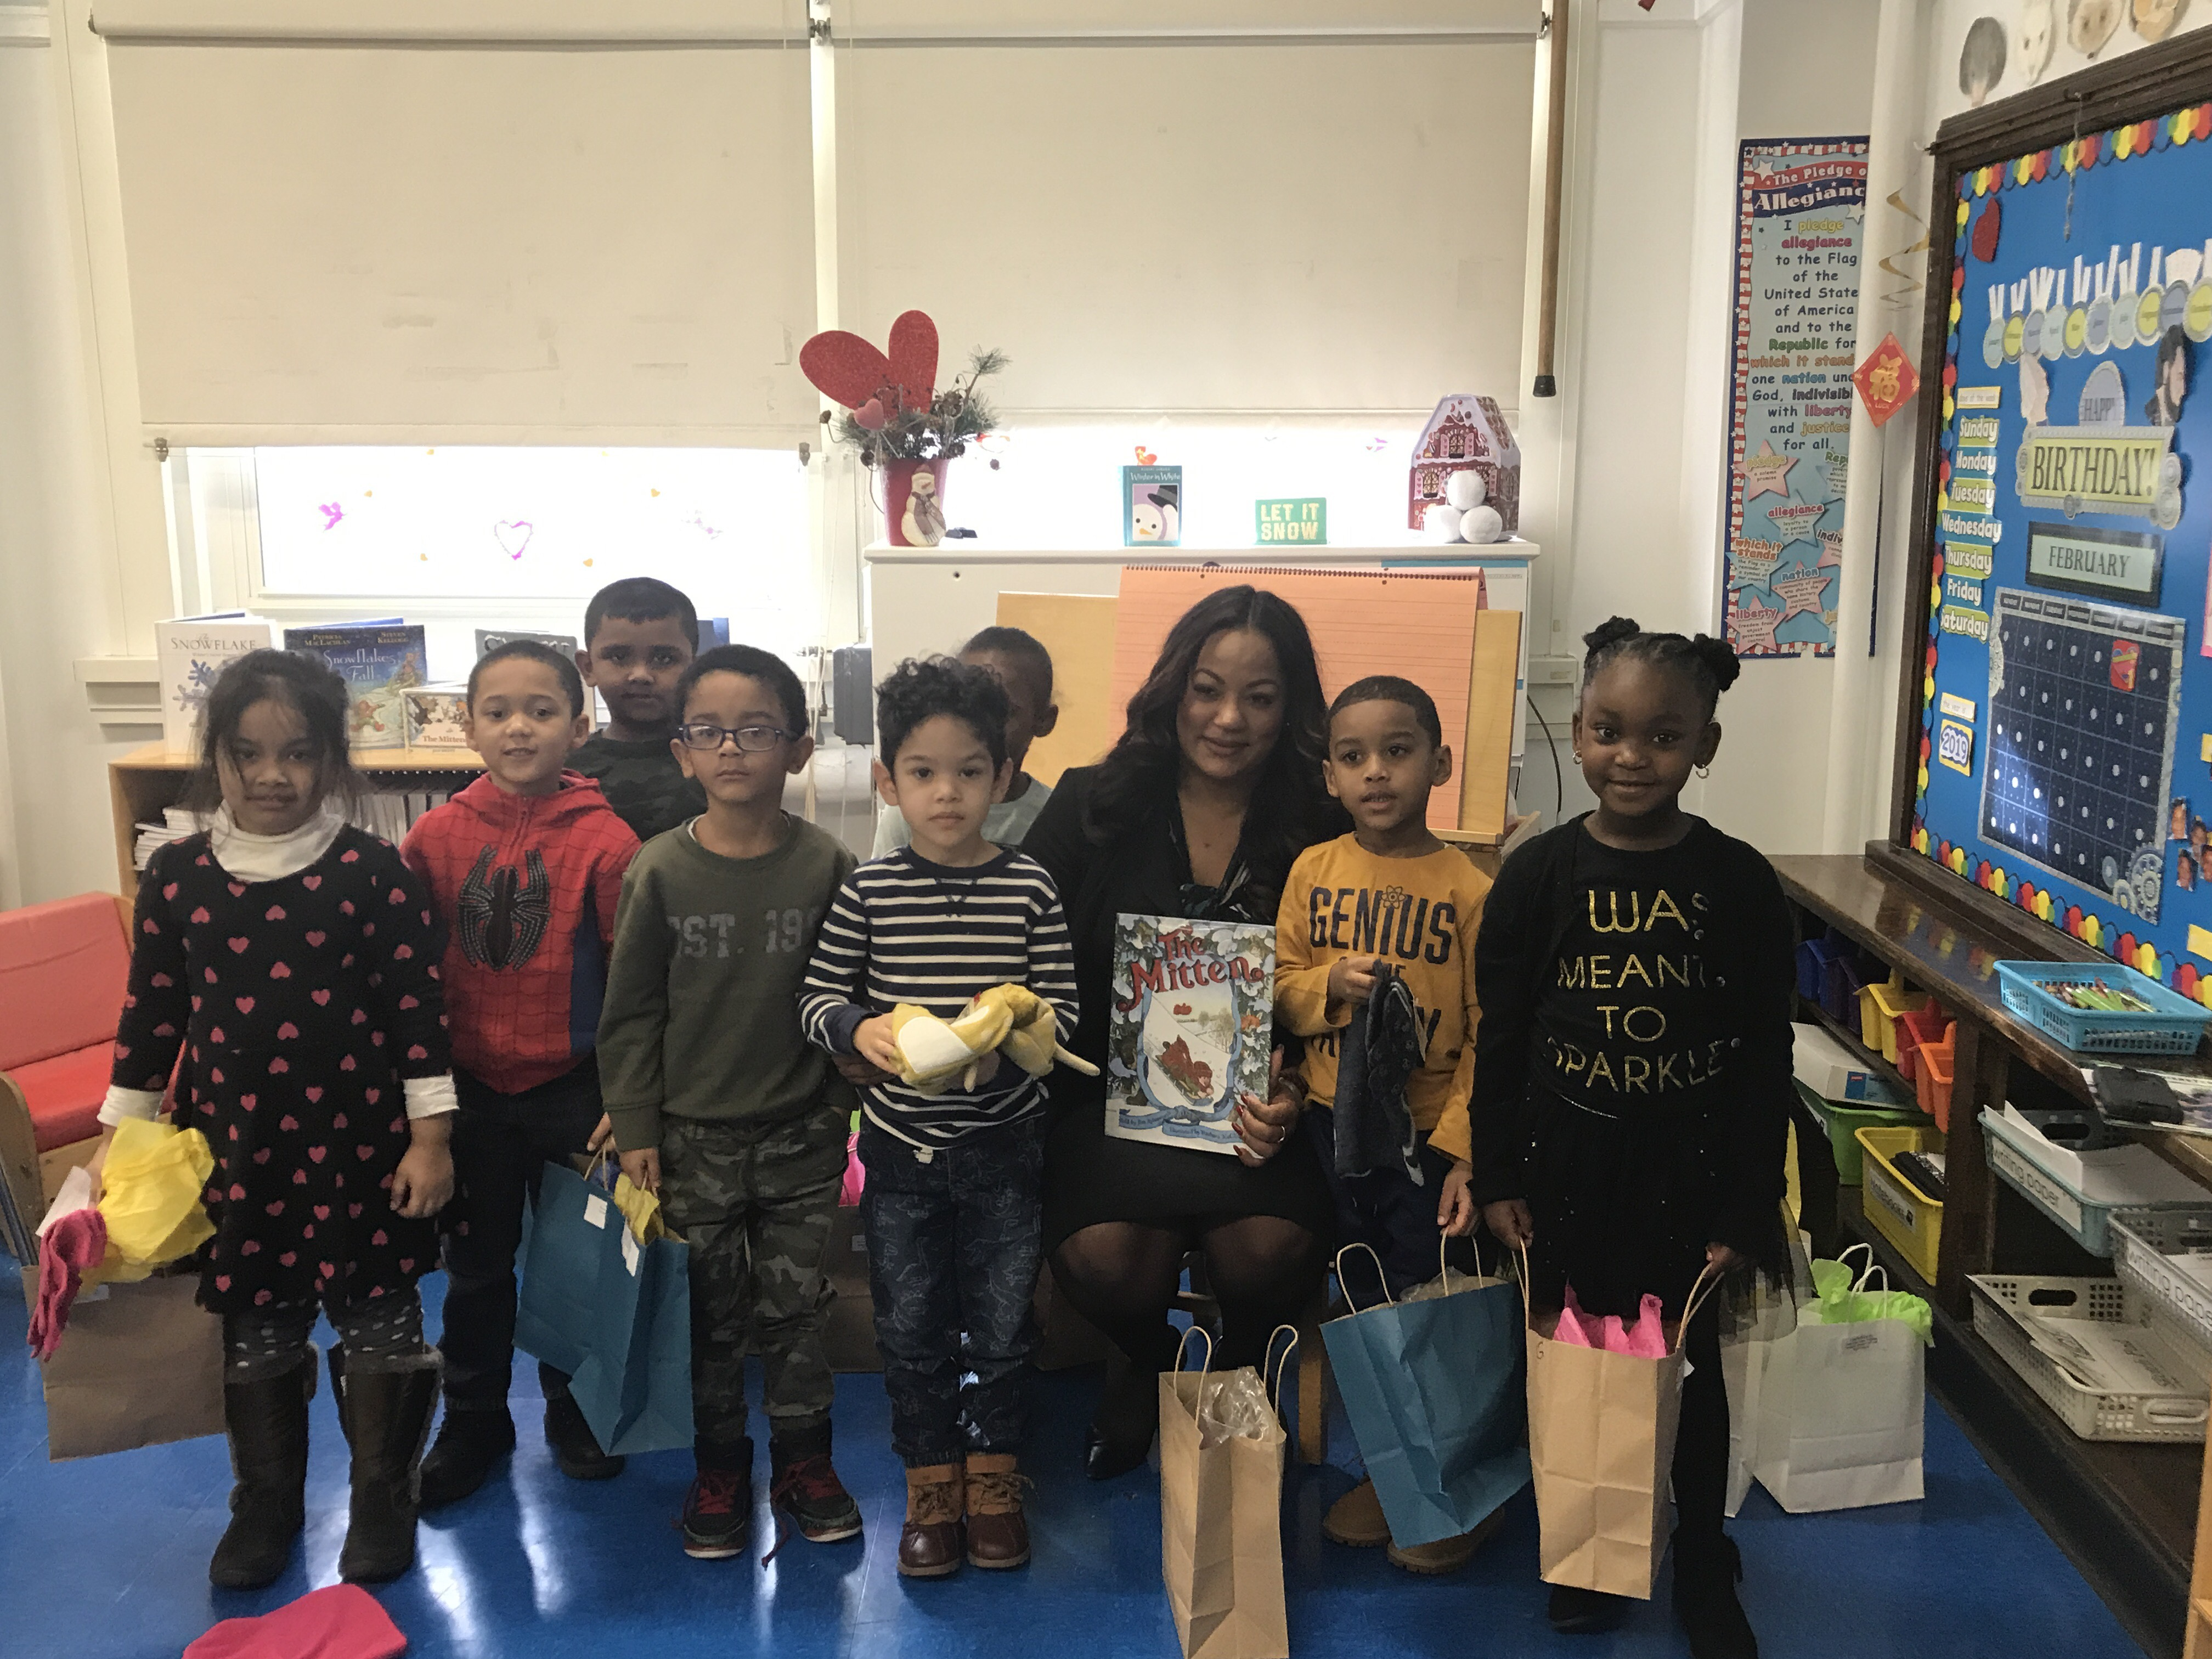 Celebrating World Read Aloud Day at PS 203